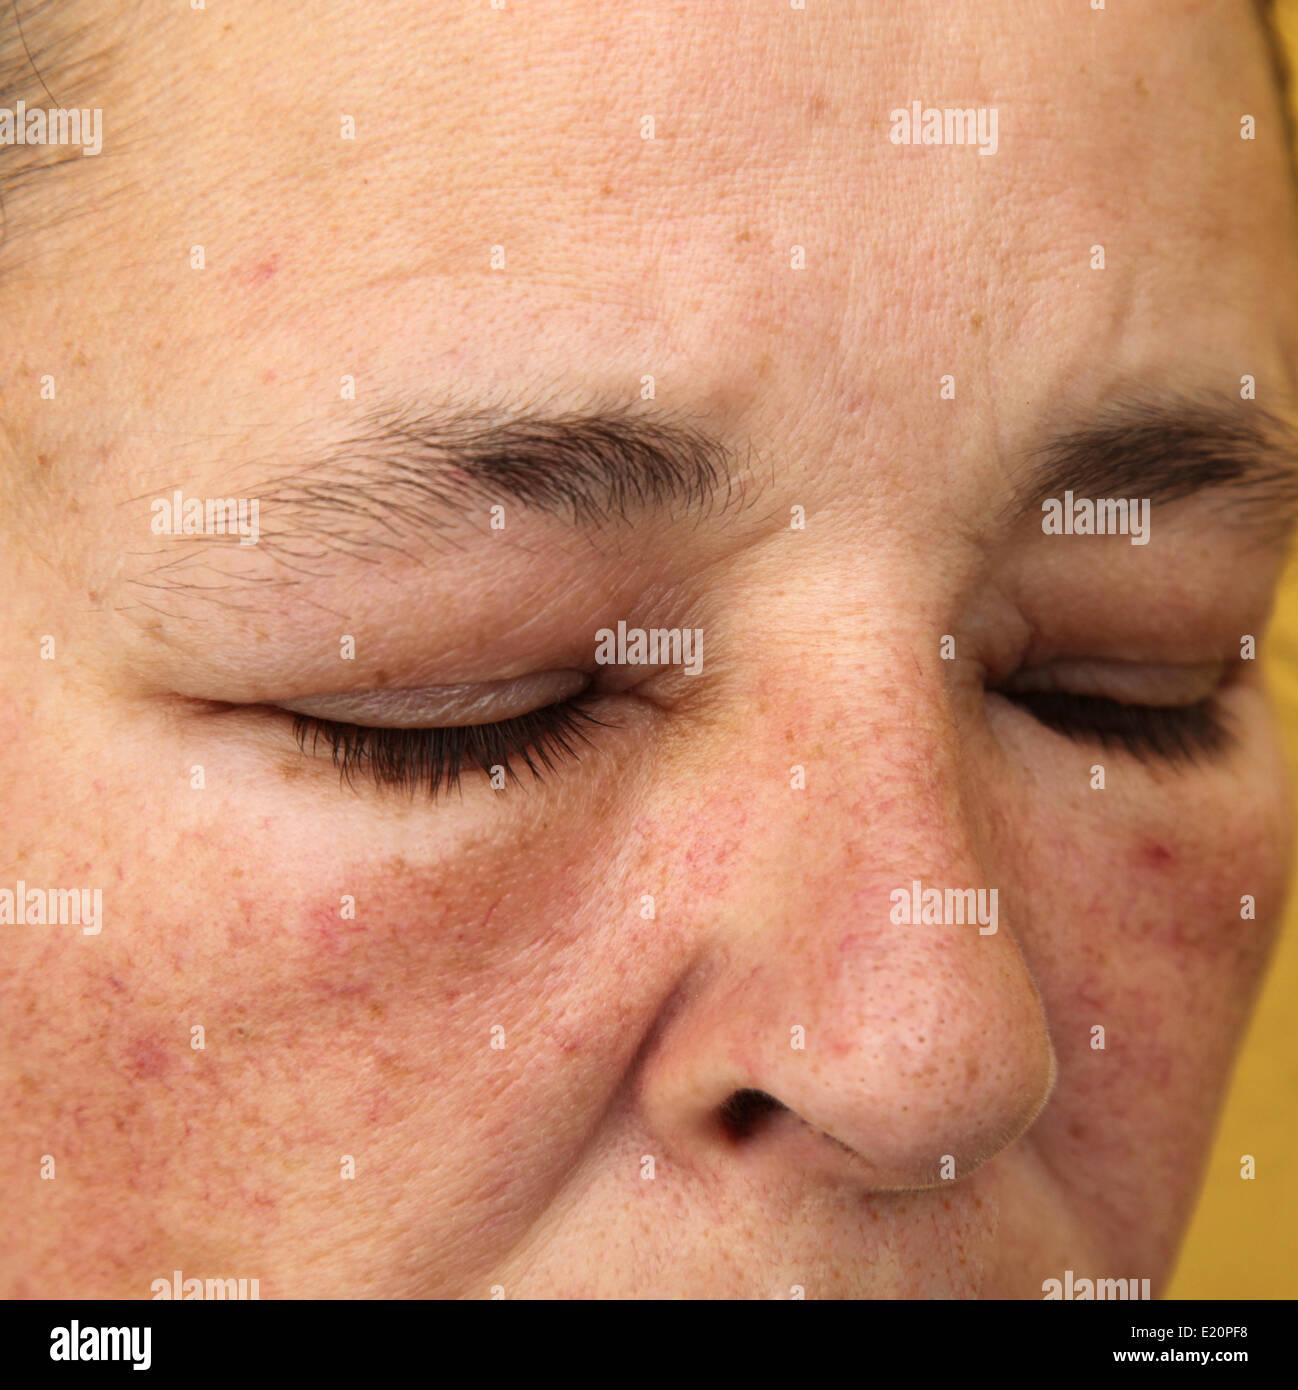 Swollen eyes and face for allergy Stock Photo